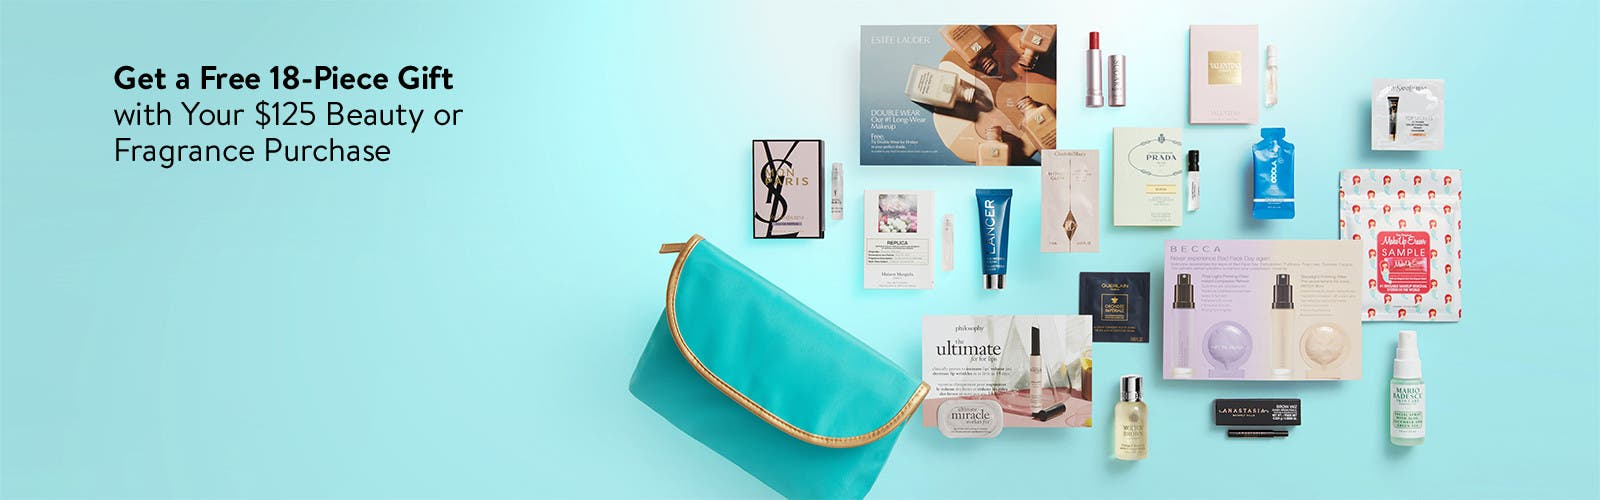 Get a Free 18-Piece Gift with Your $125 Beauty or Fragrance Purchase.